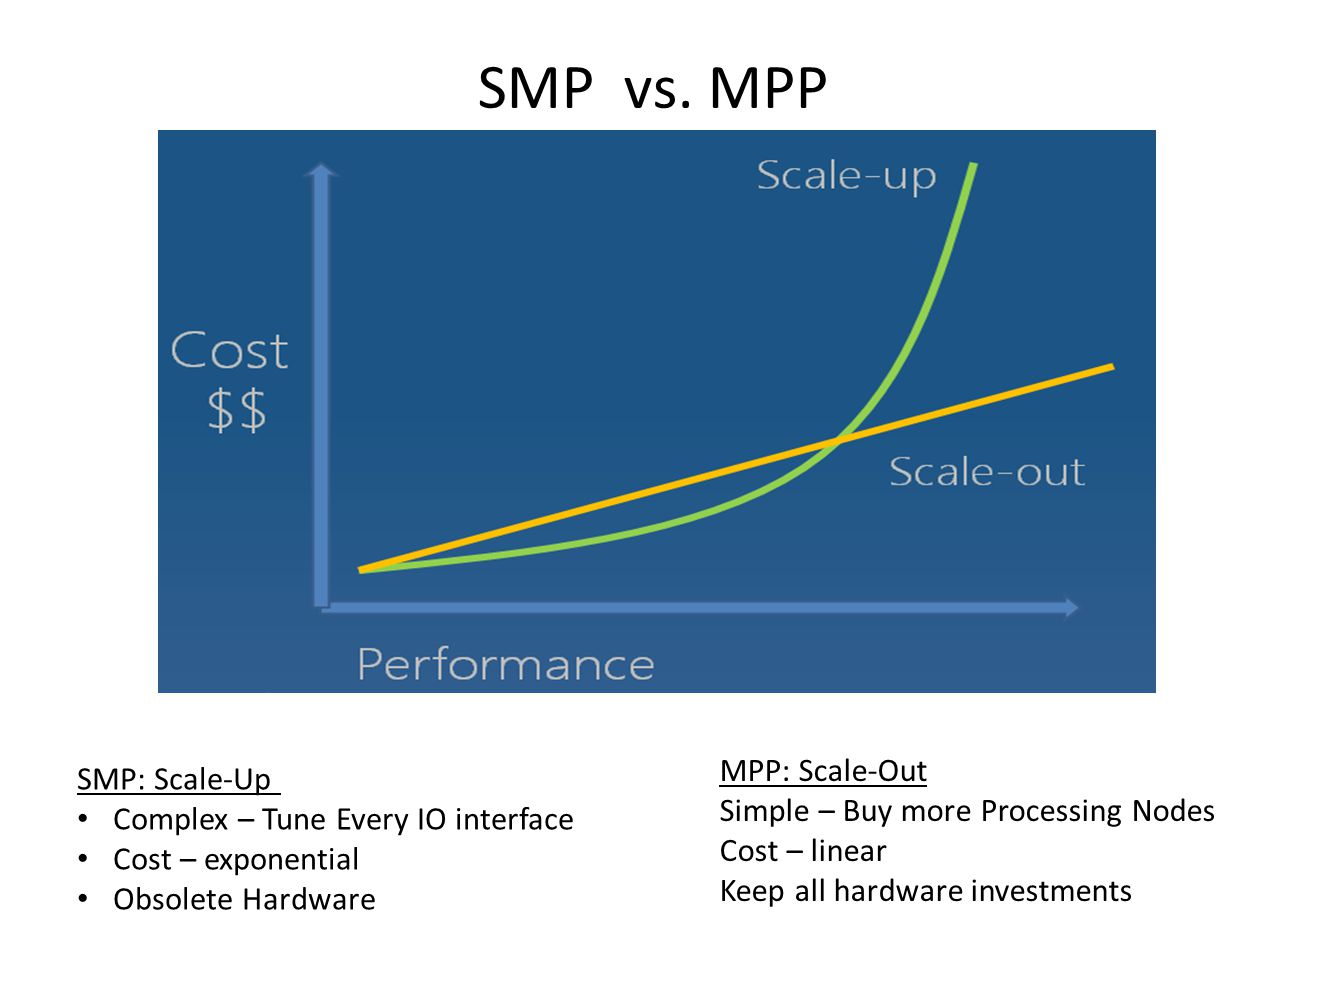 SMP: Scale-Up Complex – Tune Every IO interface Cost – exponential Obsolete Hardware MPP: Scale-Out Simple – Buy more Processing Nodes Cost – linear Keep all hardware investments SMP vs.